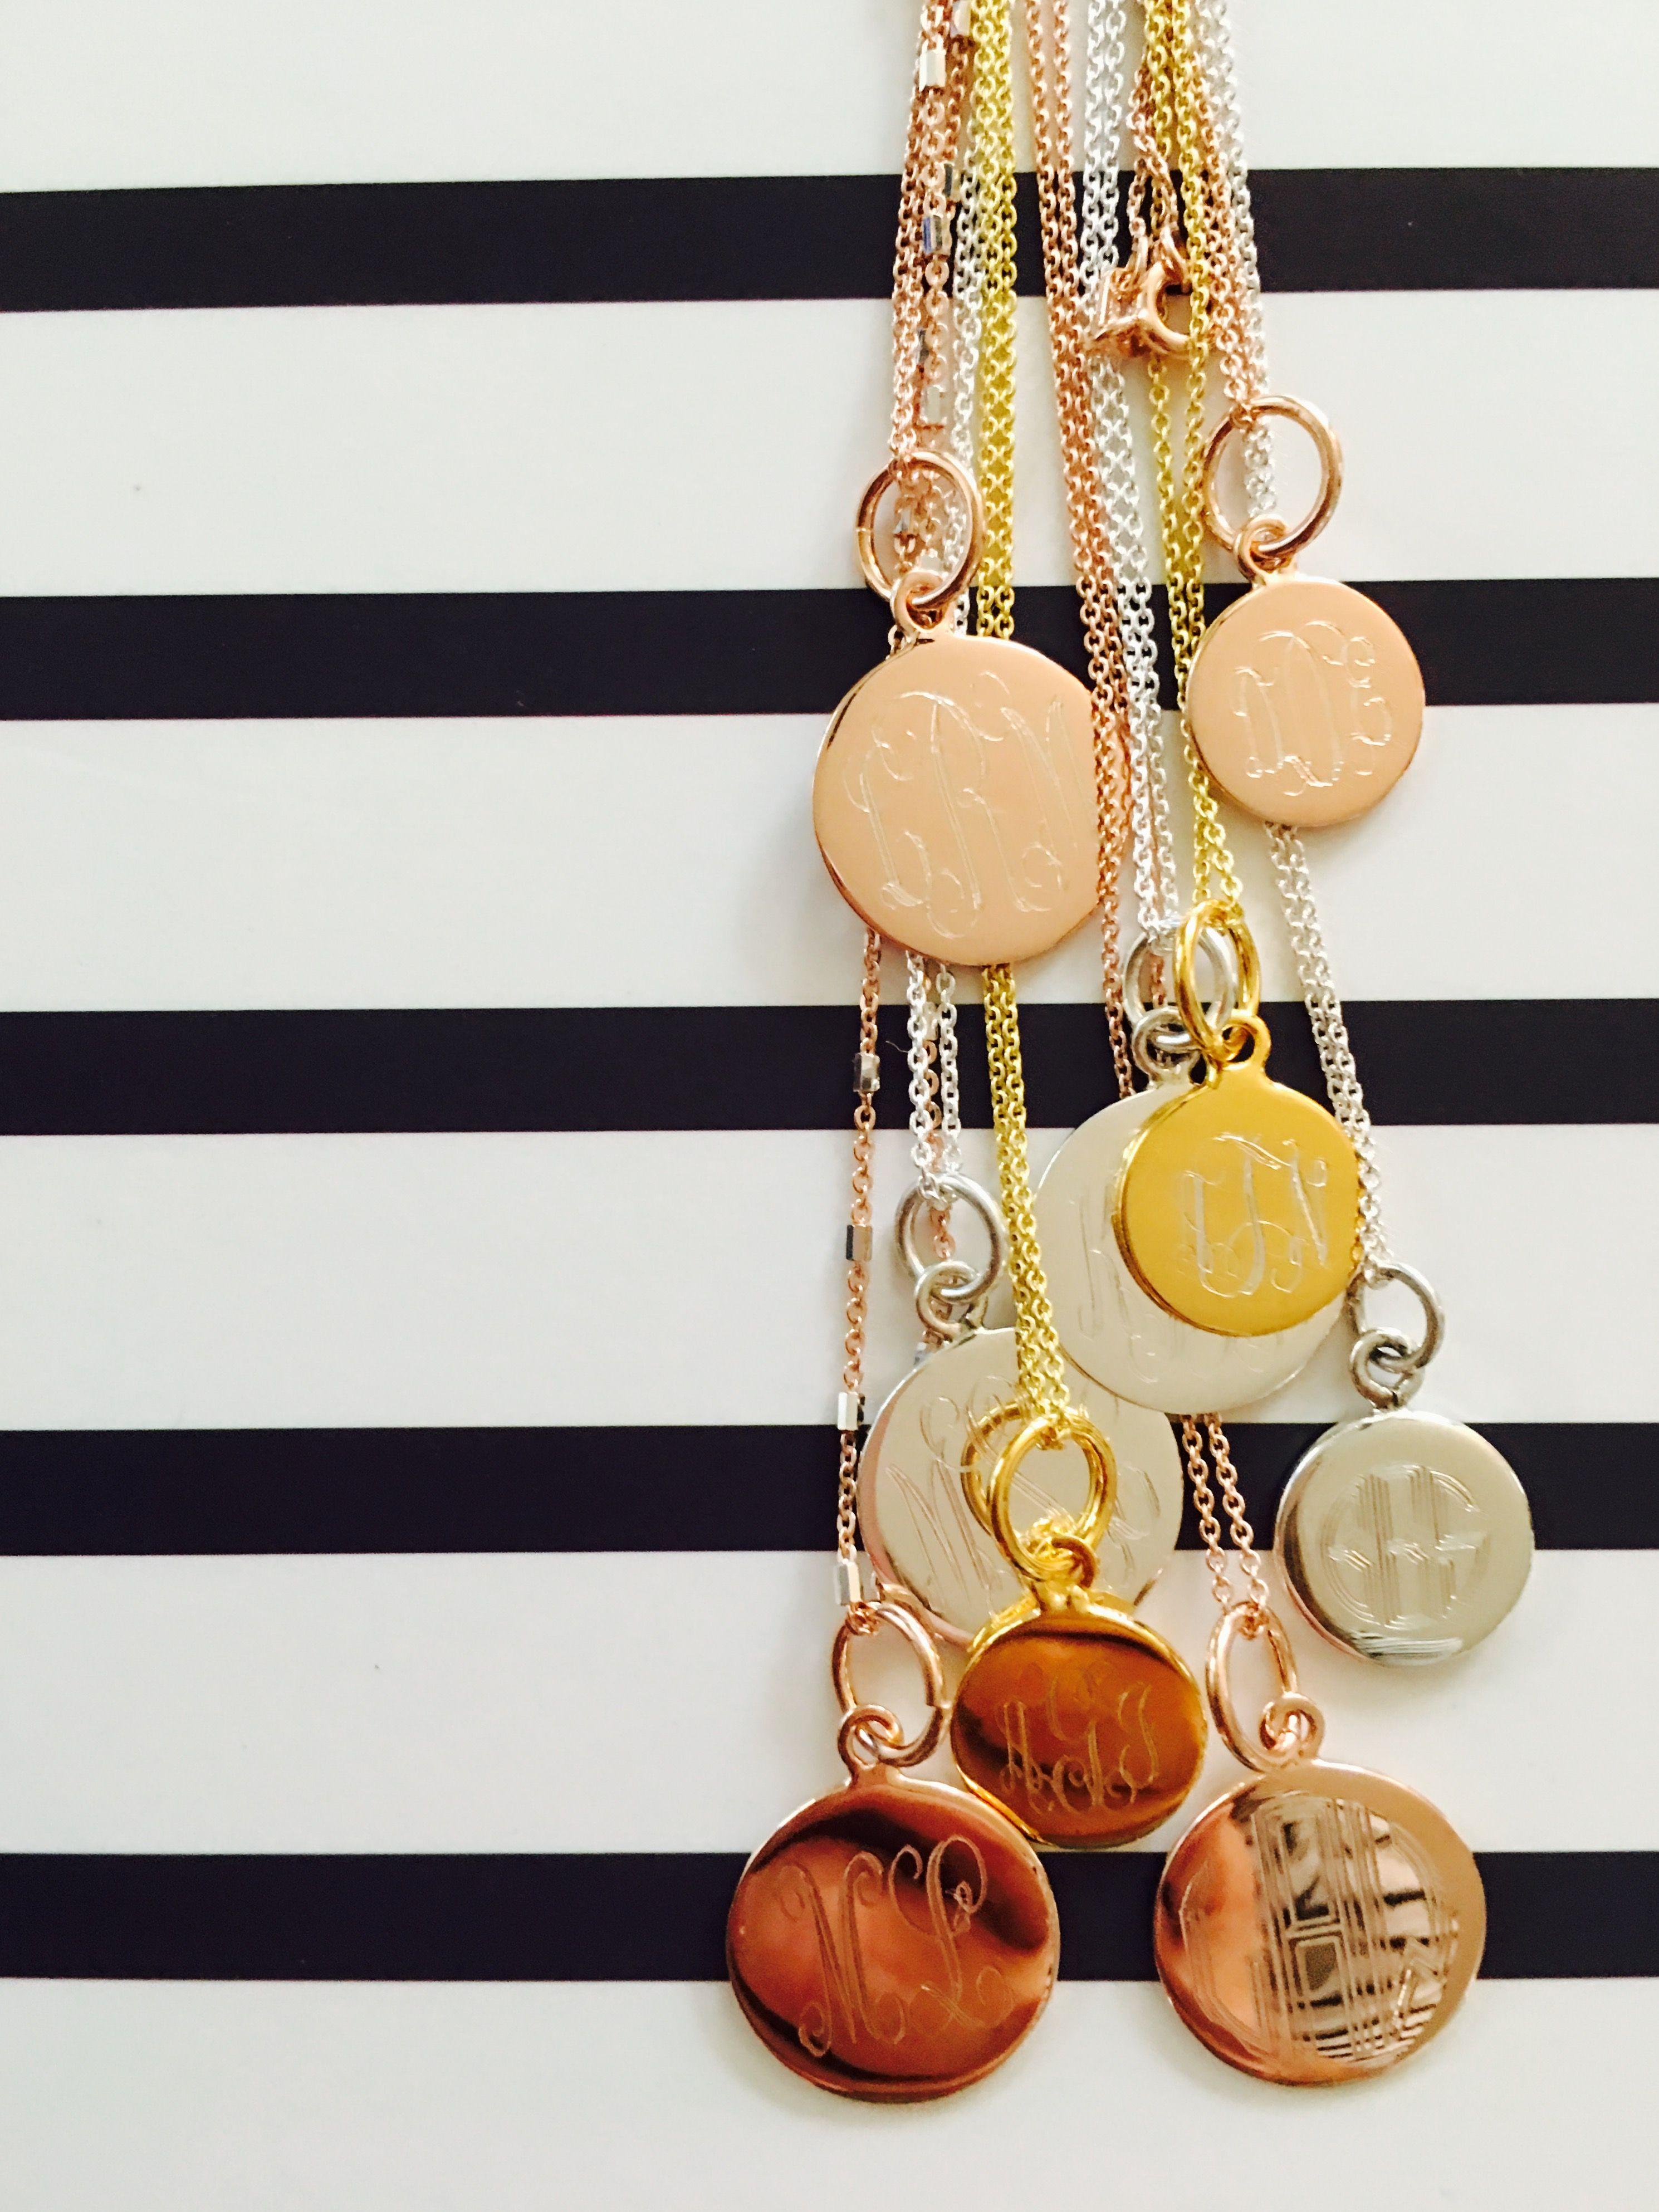 960d0e569 Swell Caroline Flutter Monogram Necklaces in gold, rose gold and sterling  silver... pairs well with stripes!